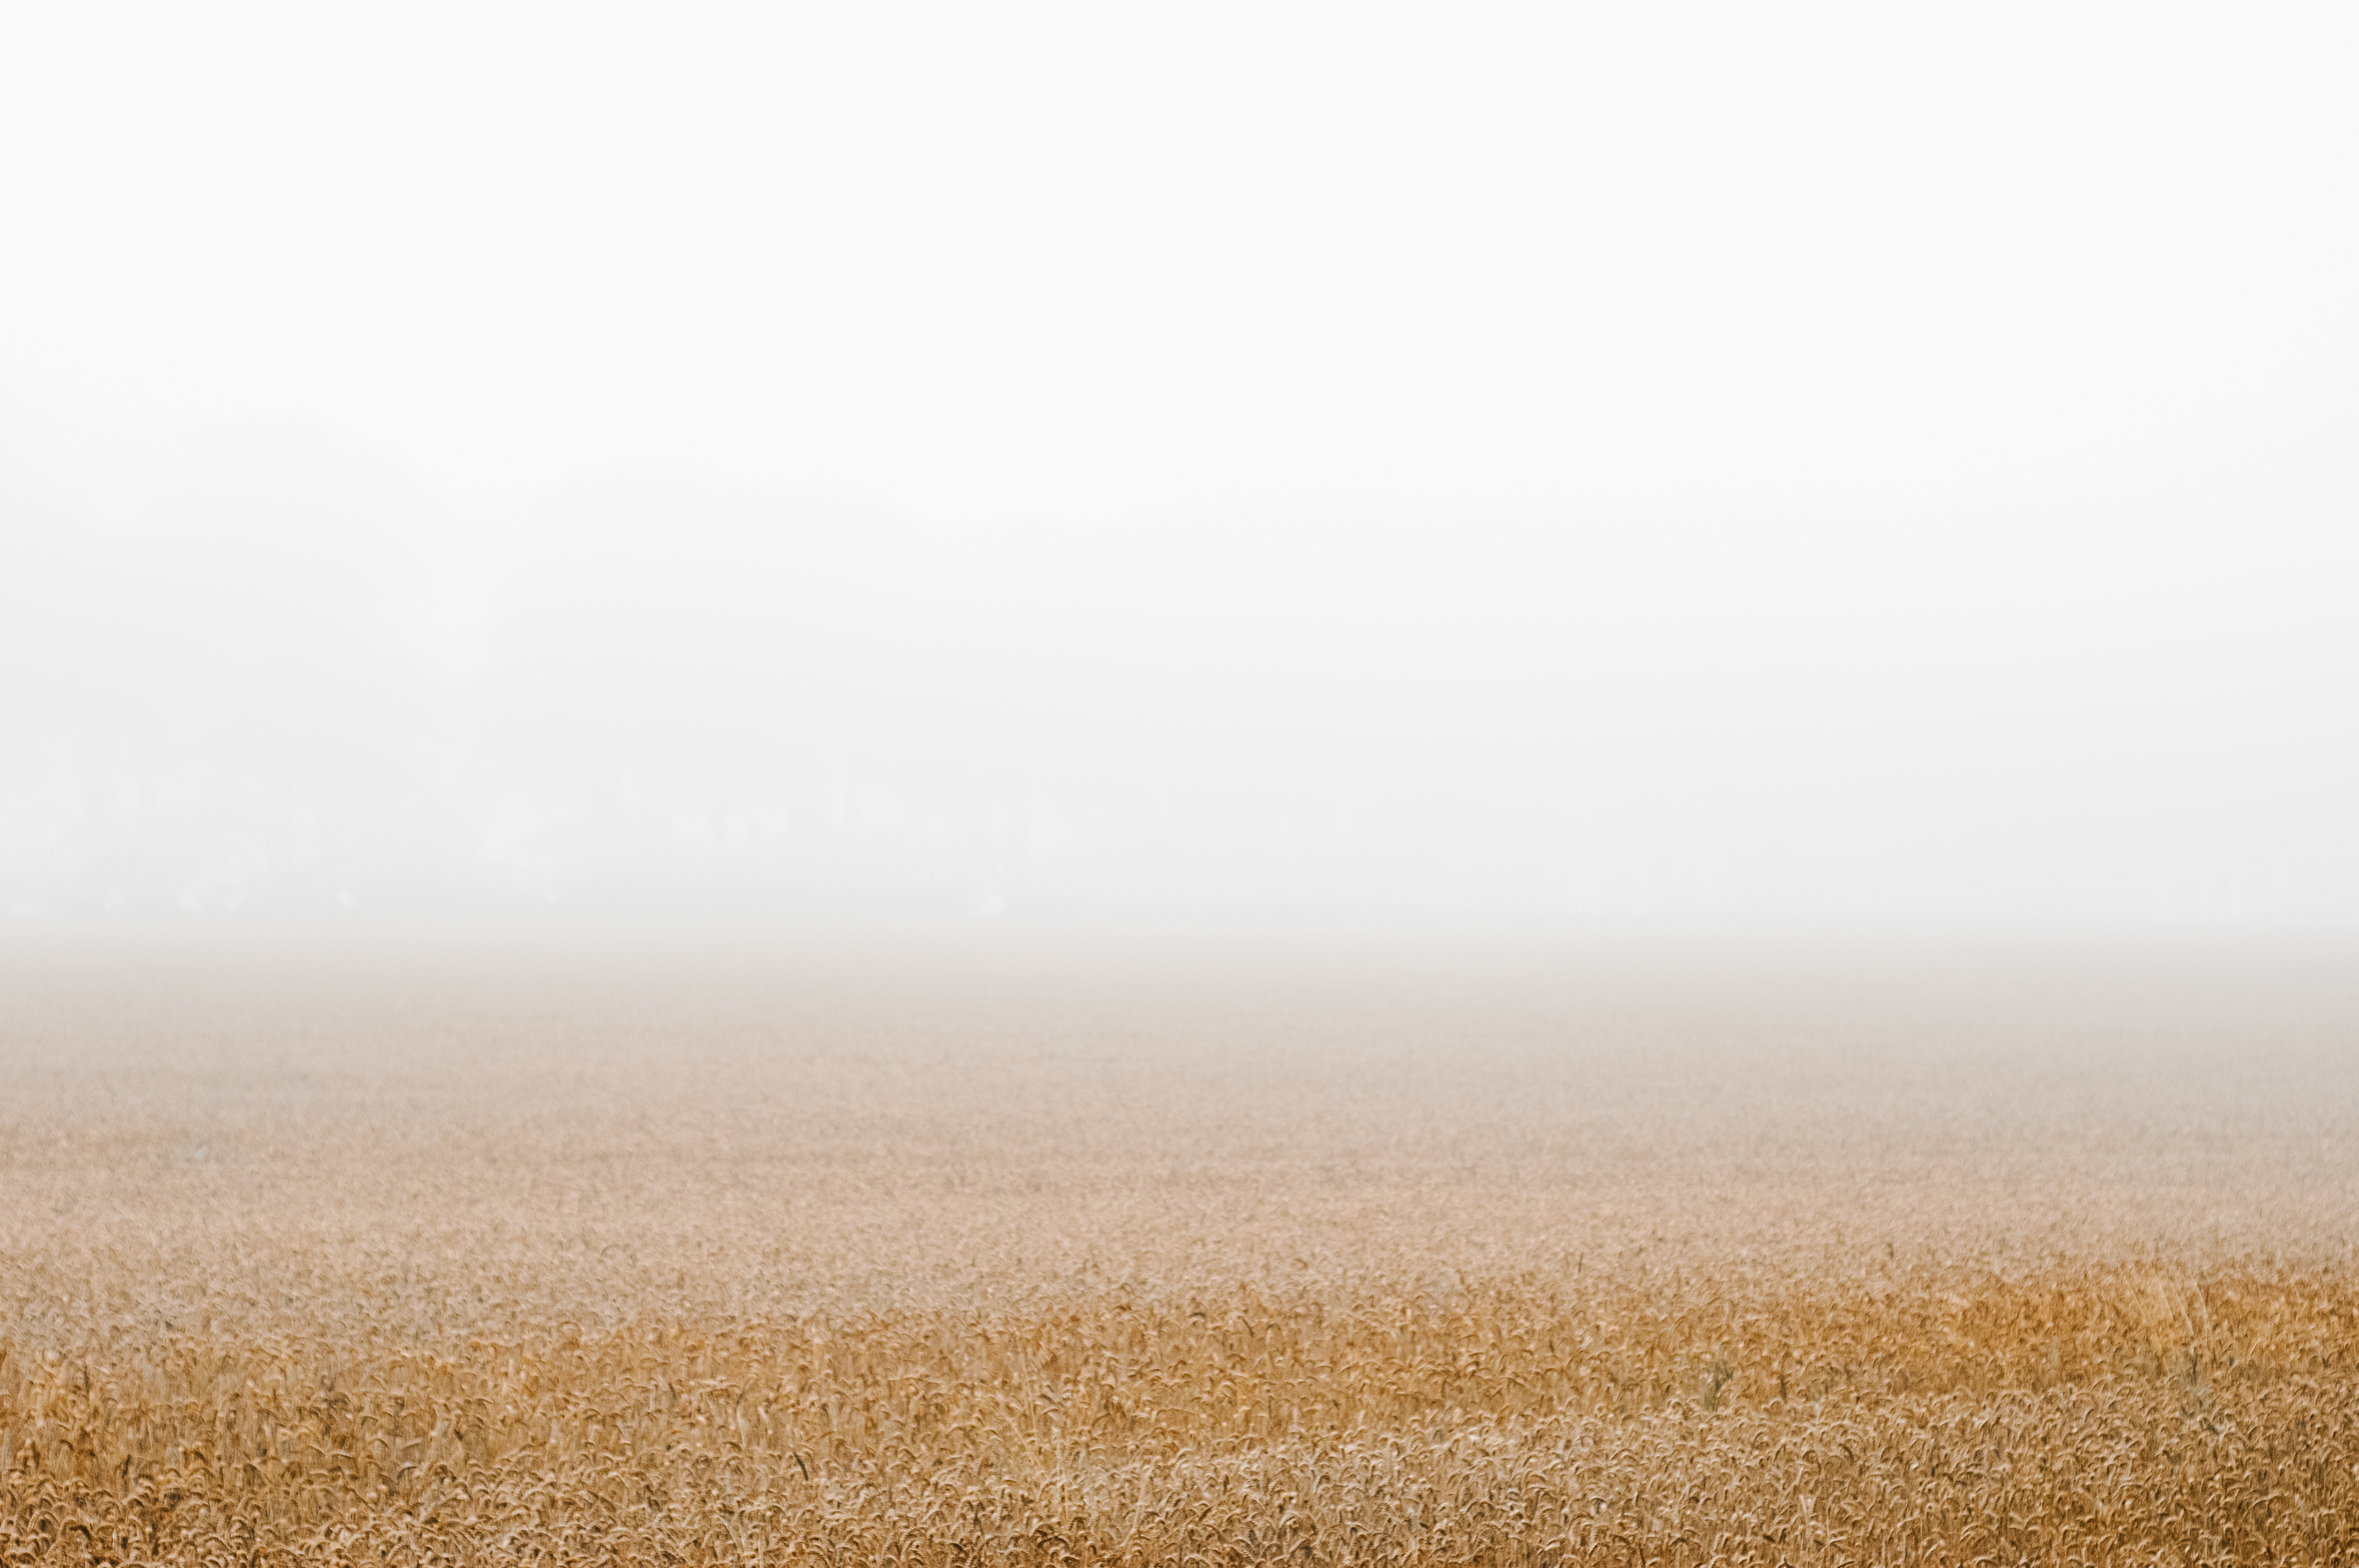 Driving through the Mendips we hit a pea souper, such a change from the blazing heat we've had here in the UK. Loved the negative space vs wheat field 😍